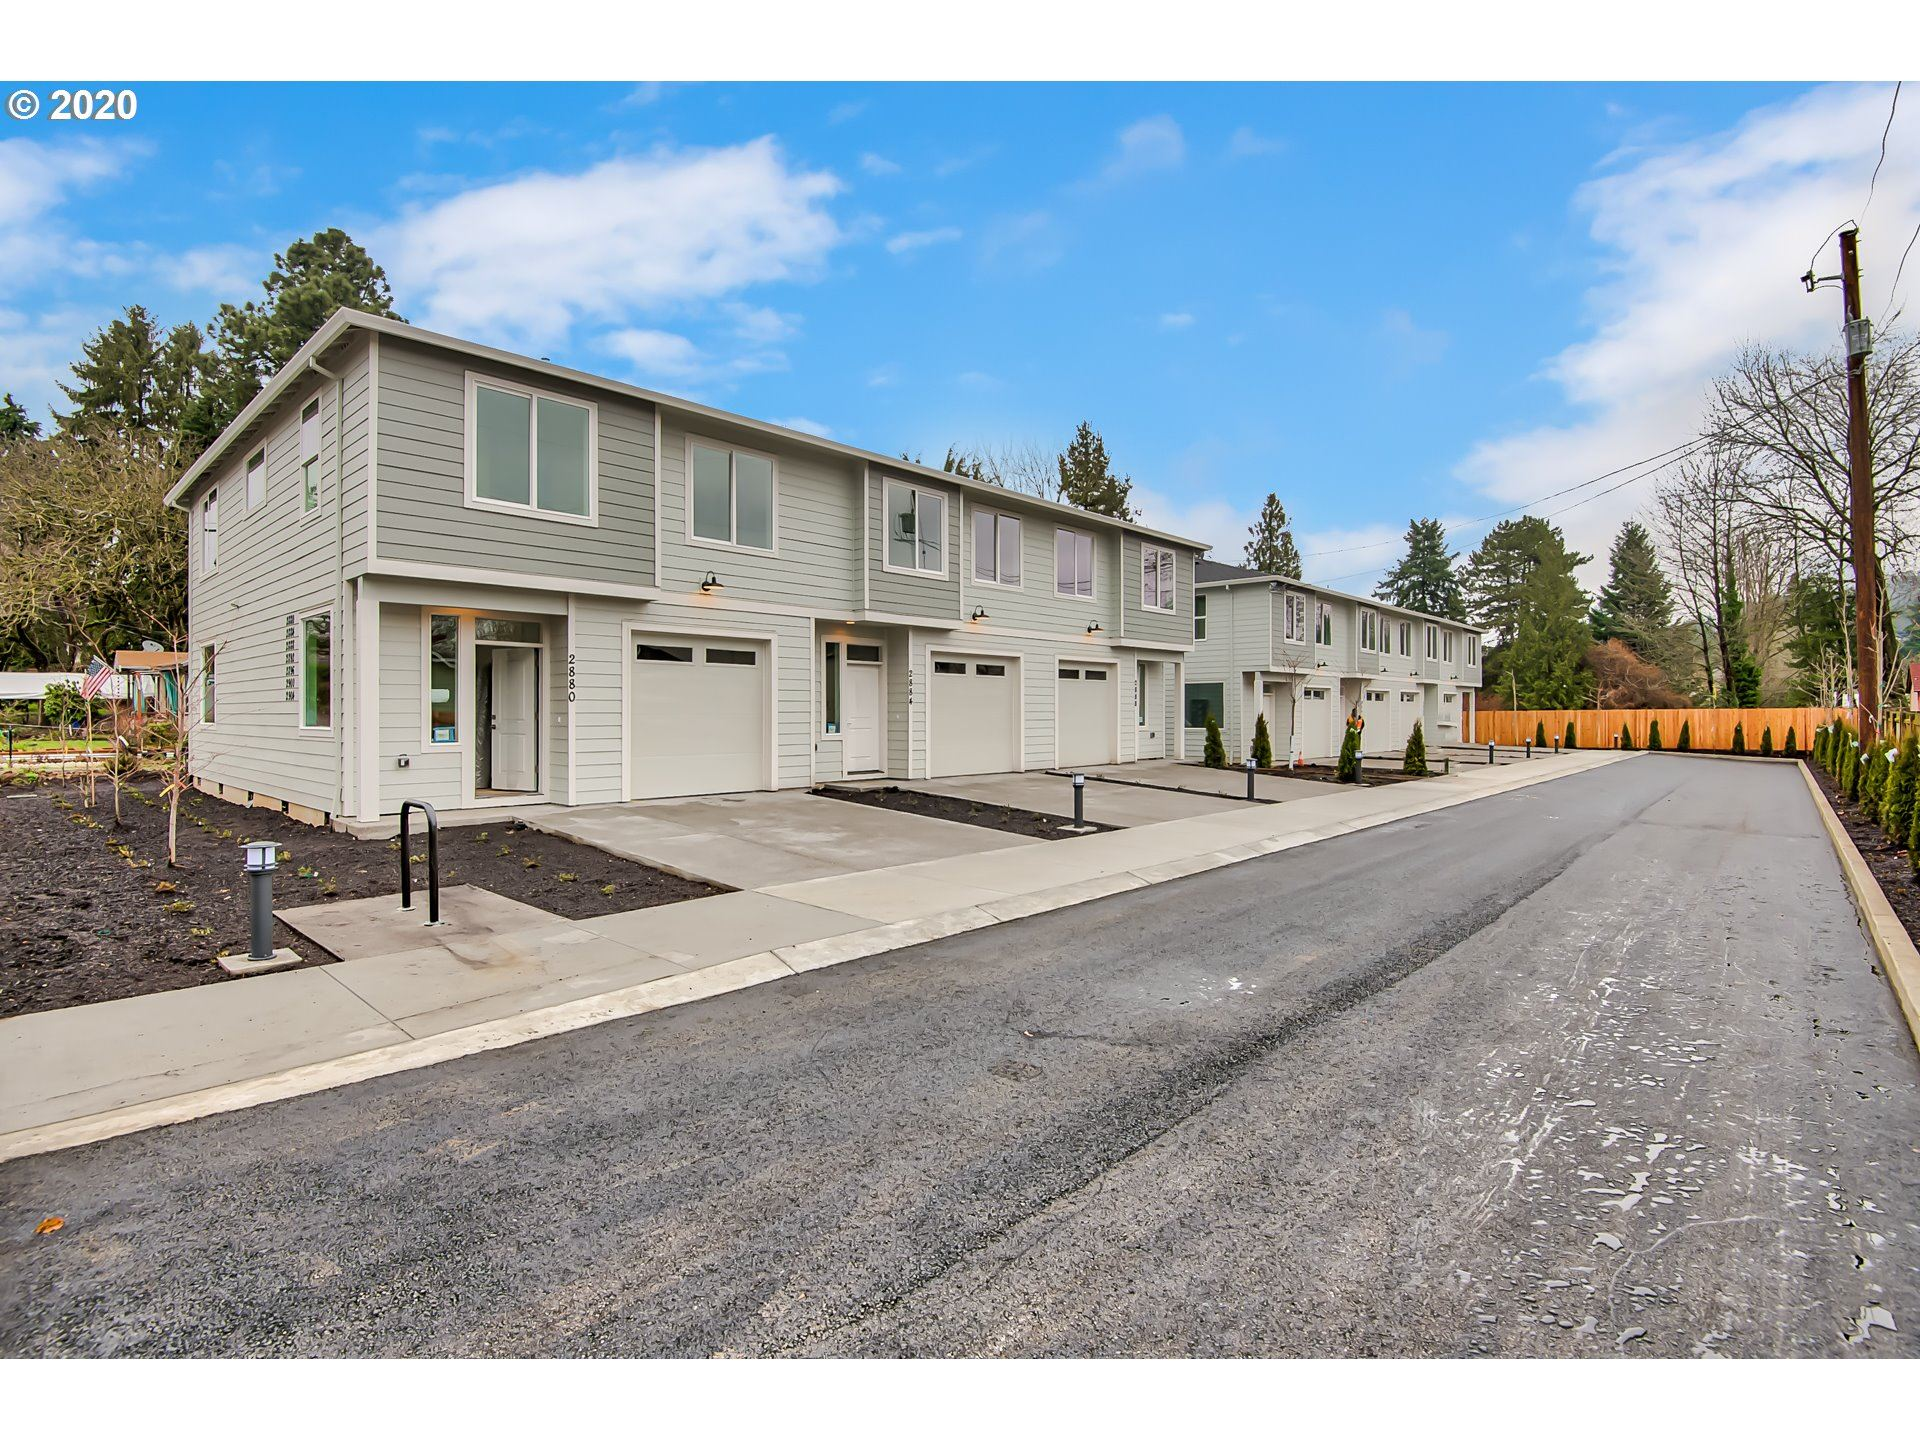 2880 SE 87TH AVE, Portland, OR 97266 - MLS#: 20623491